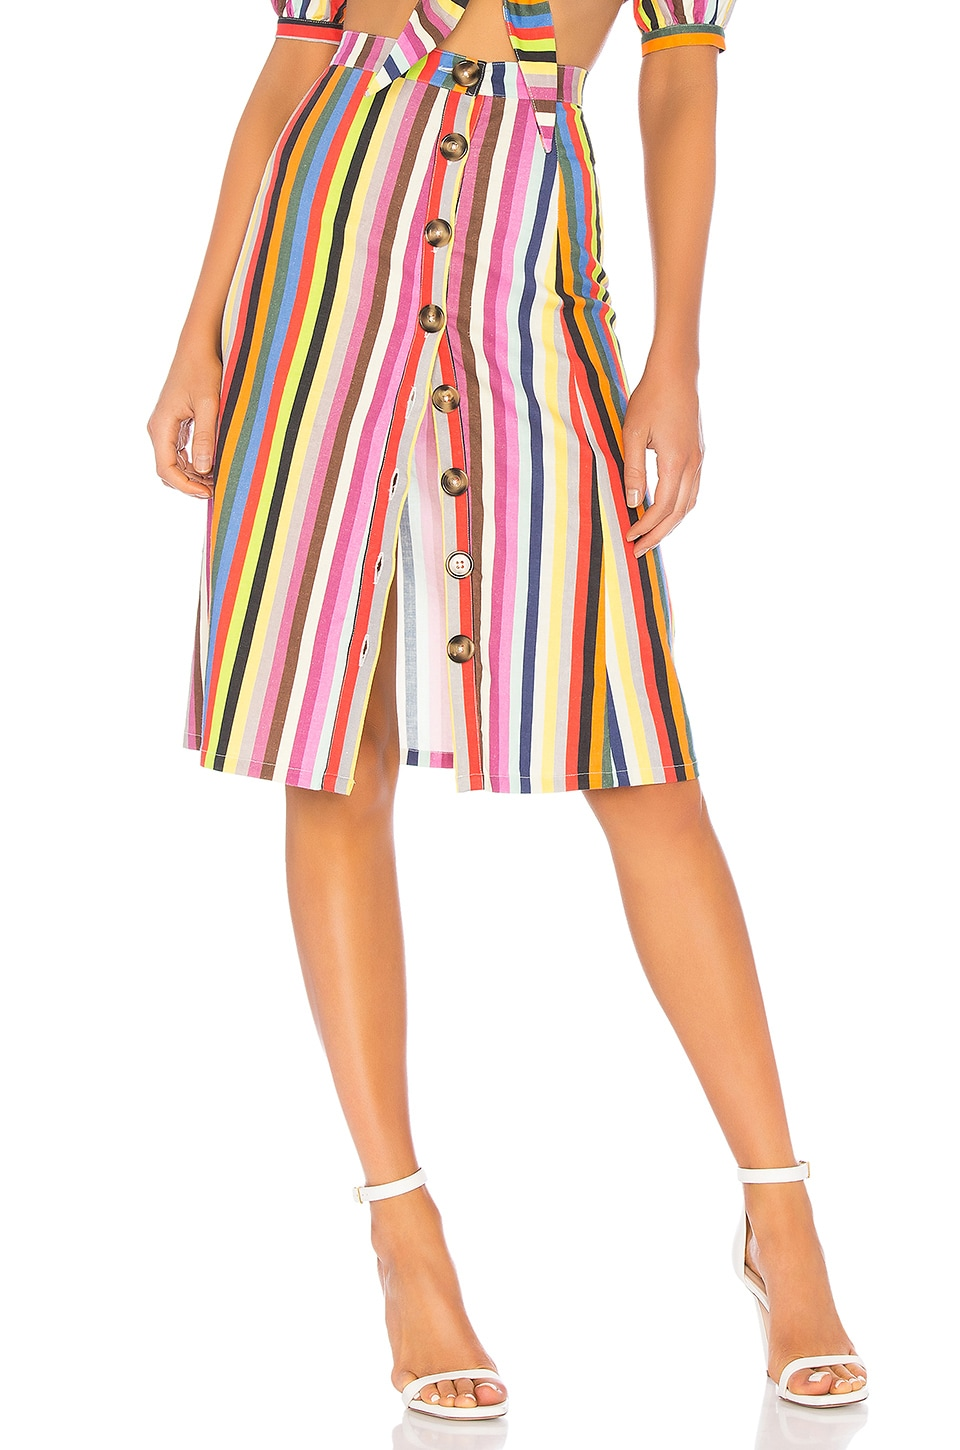 LPA Button Up Midi Skirt in Rainbow Stripe